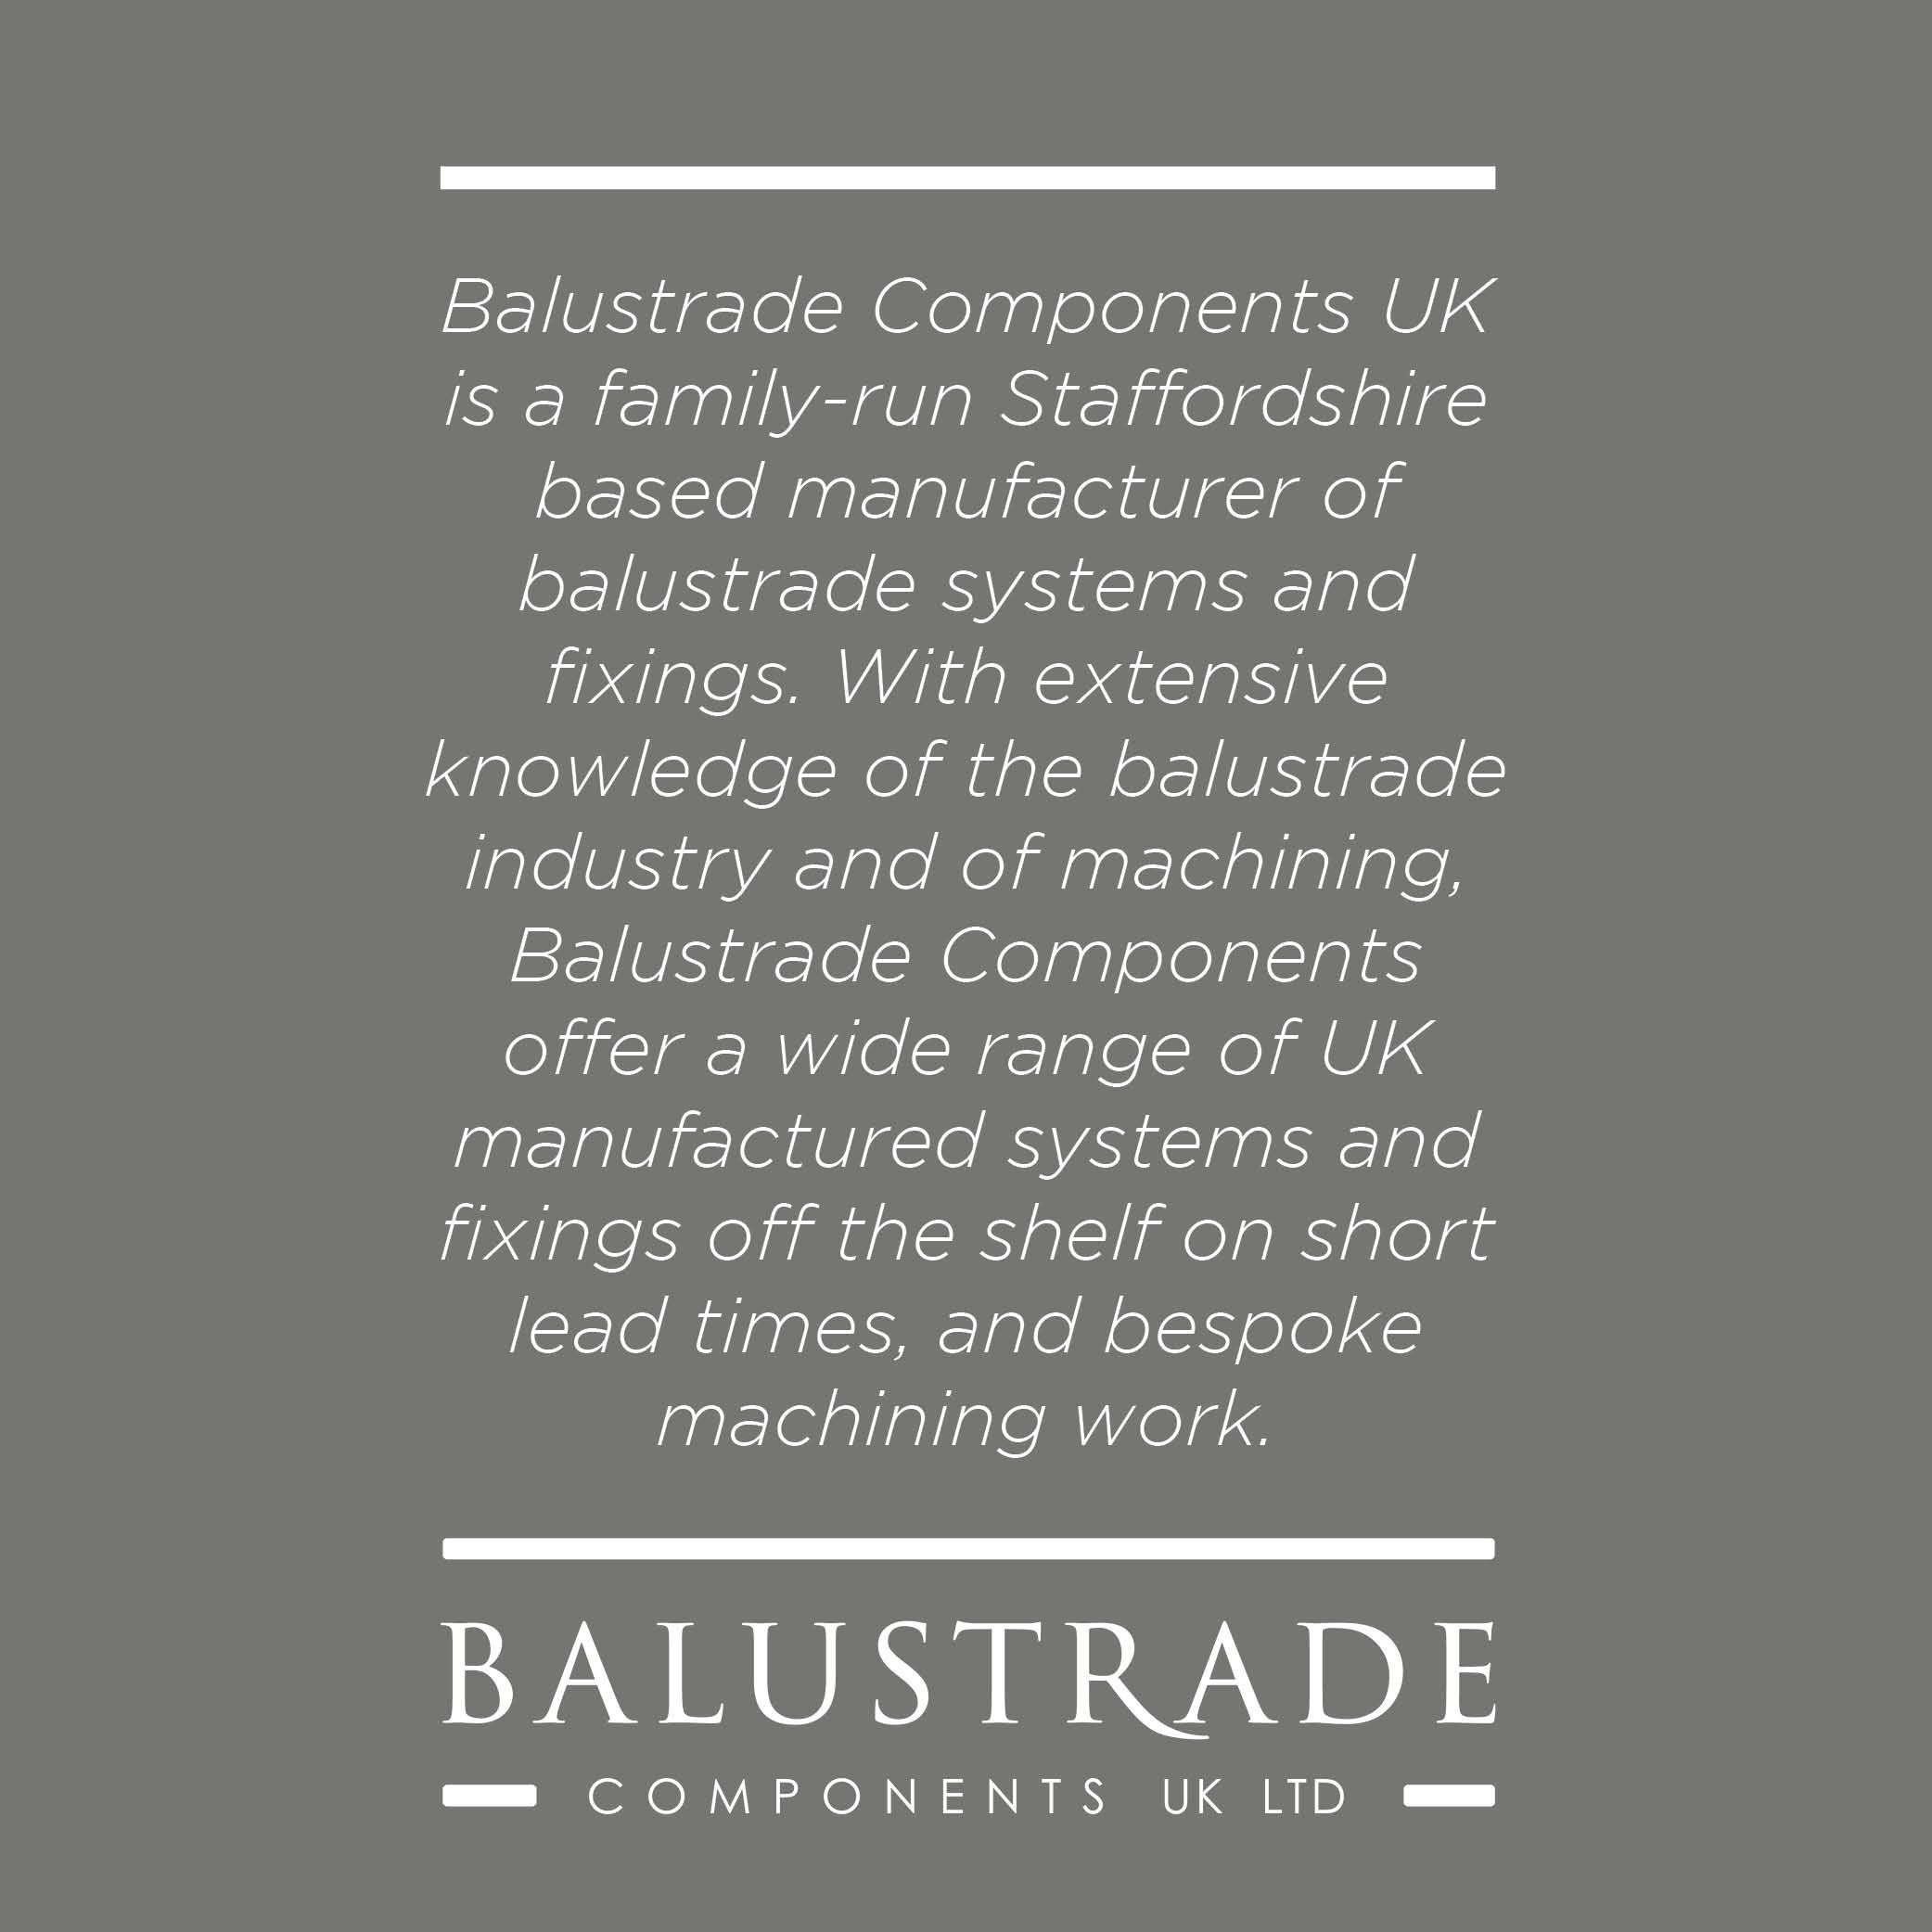 About Us > Balustrade Components UK is a family-run Staffordshire based manufact…